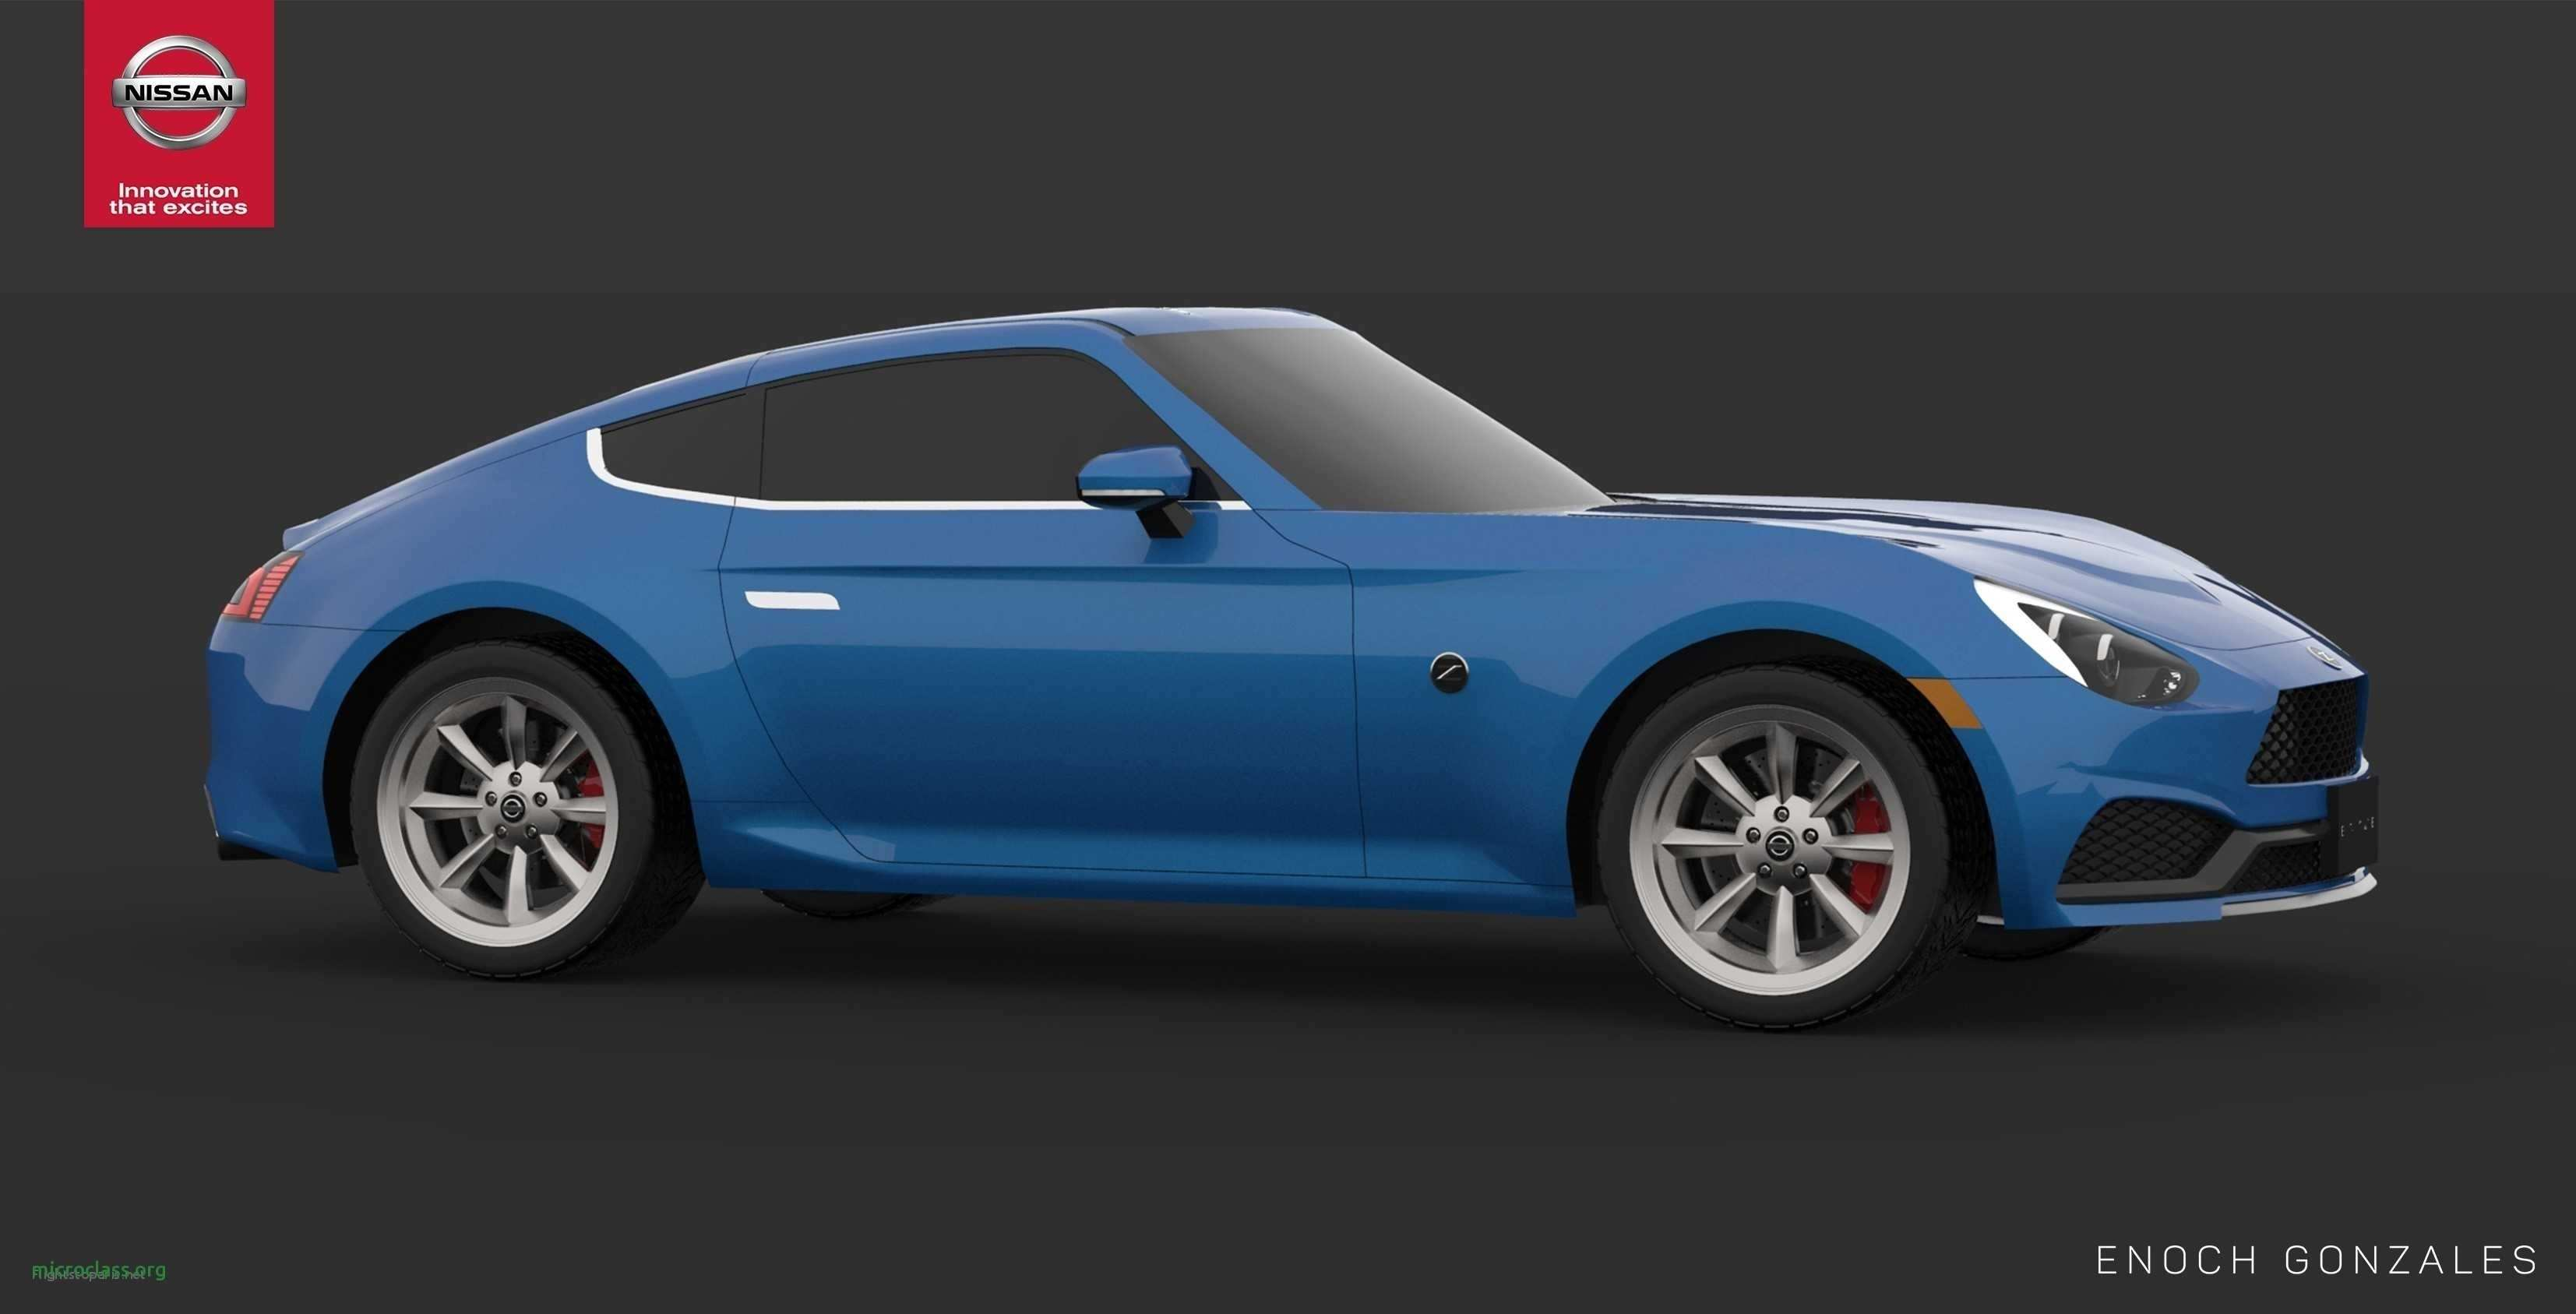 56 The Best 2020 The Nissan Z35 Review Redesign And Concept